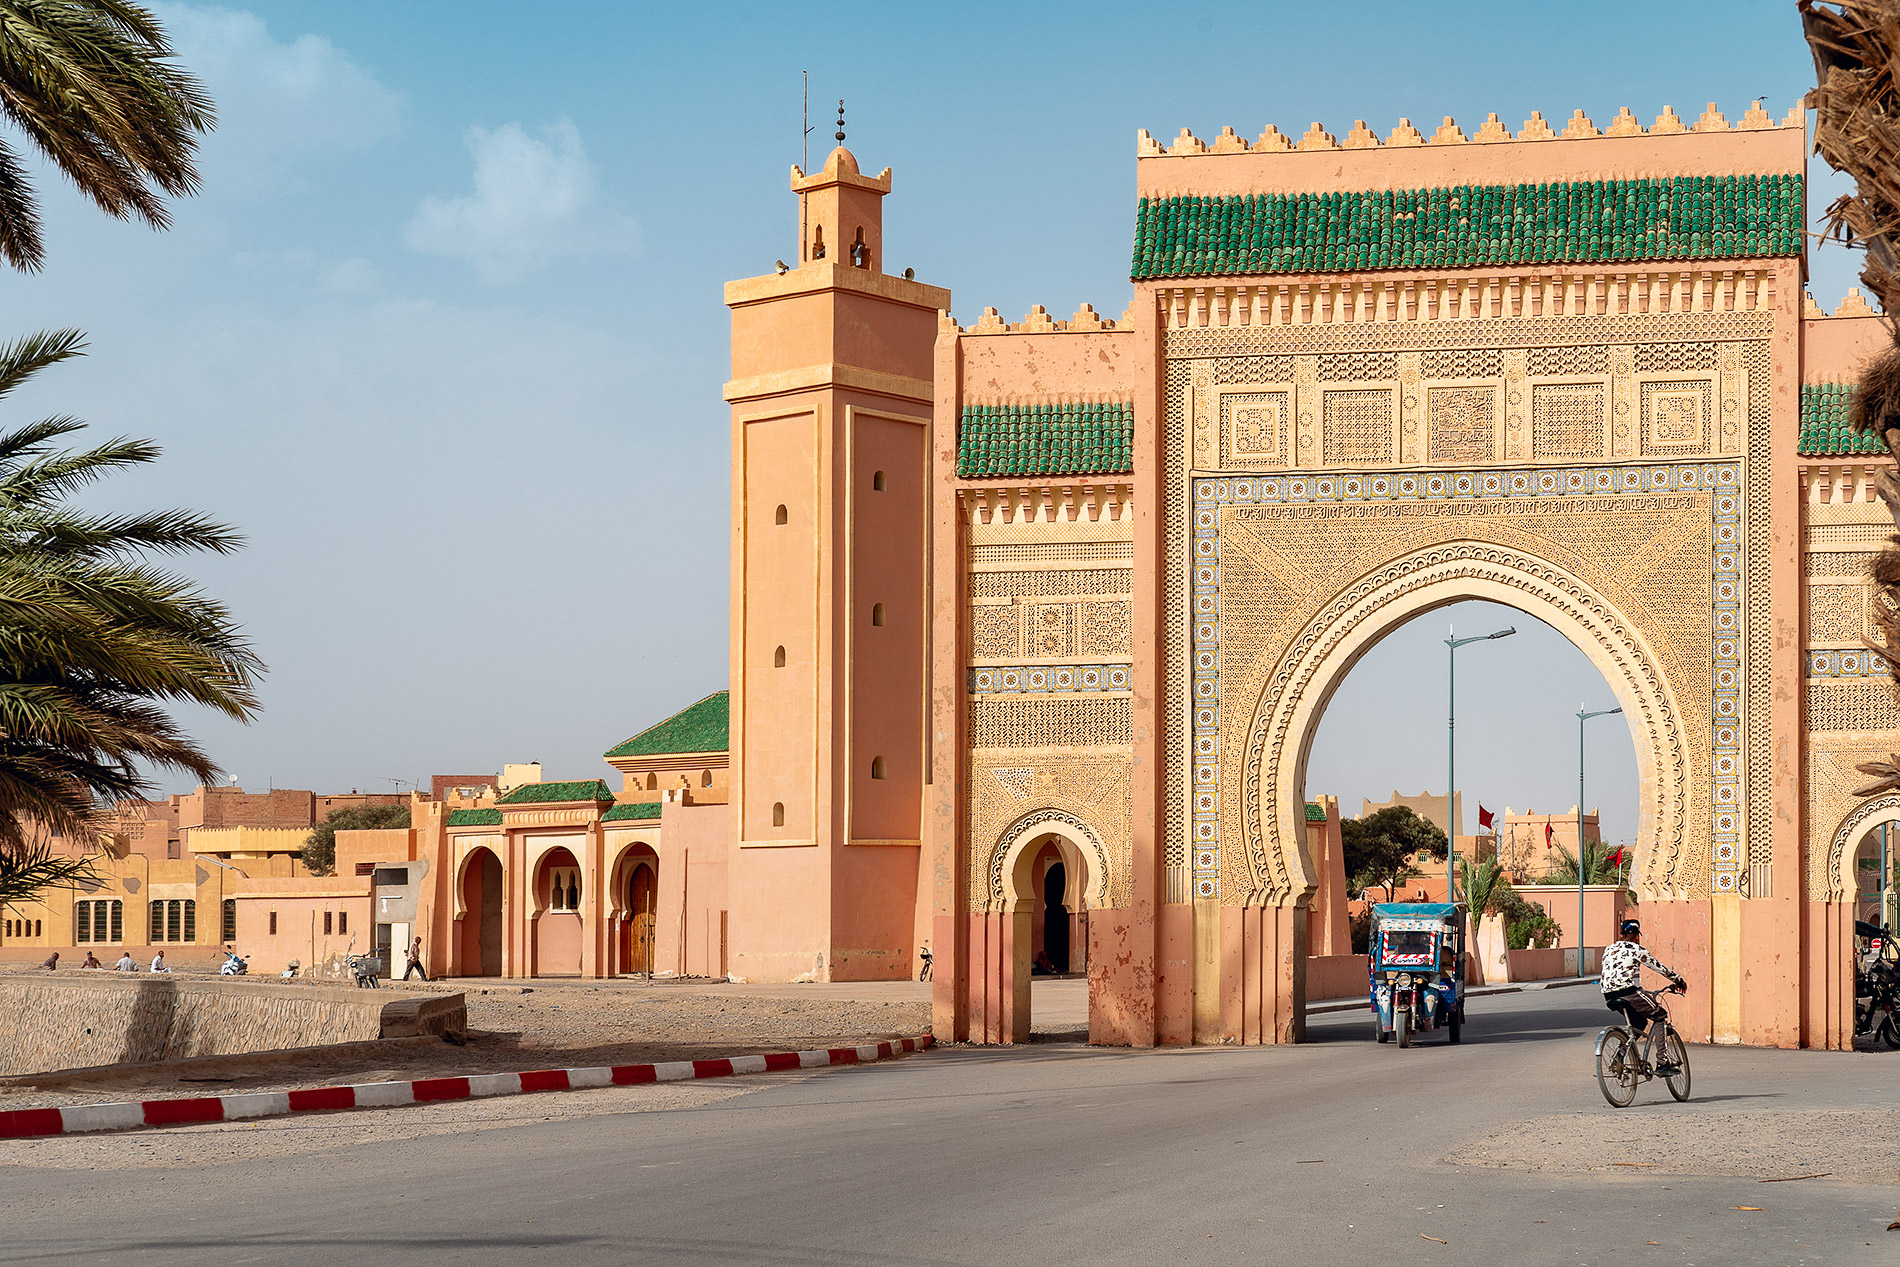 The western gate of Rissani, known by many as the door to the Sahara desert